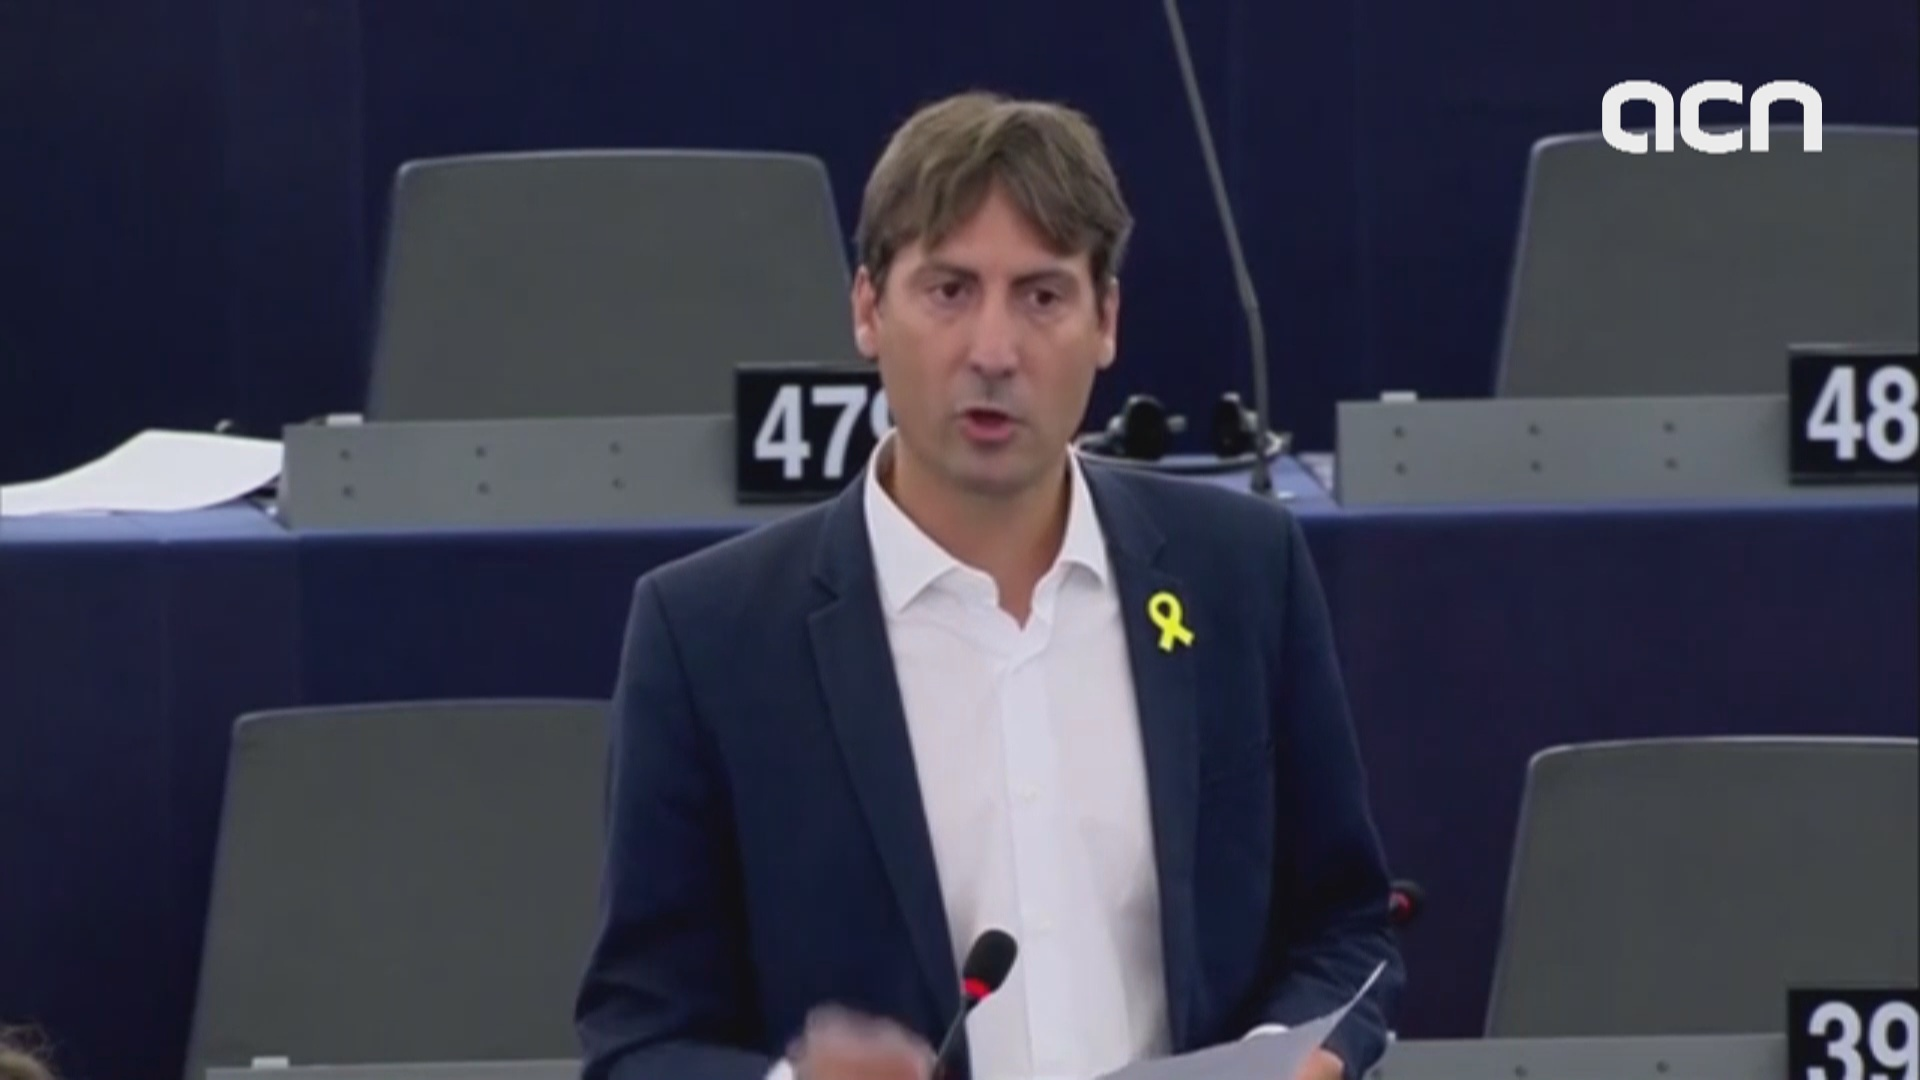 Catalan MEP invites European Commission president to visit jailed leaders